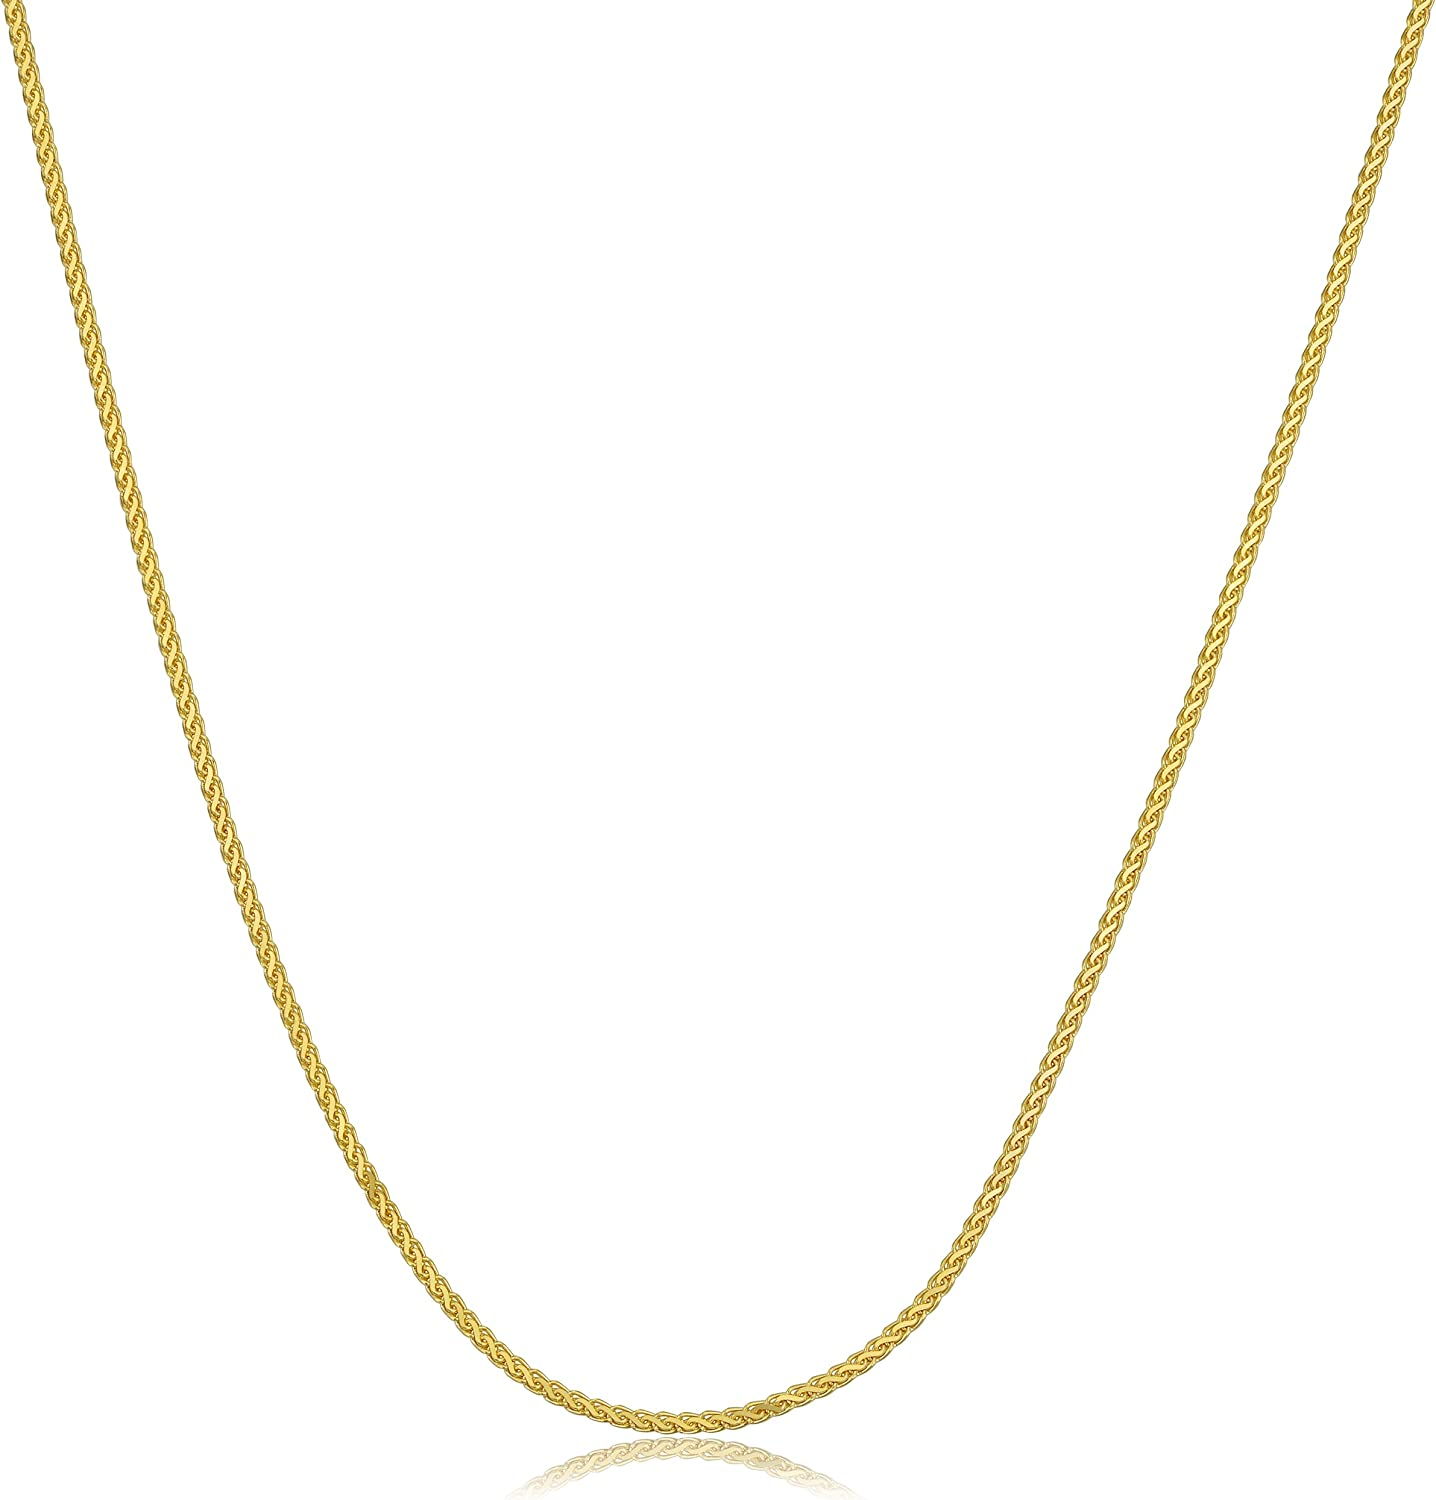 1.2 mm Solid 14k Yellow Gold Chain Wheat Necklace Flat Open Thin Cable